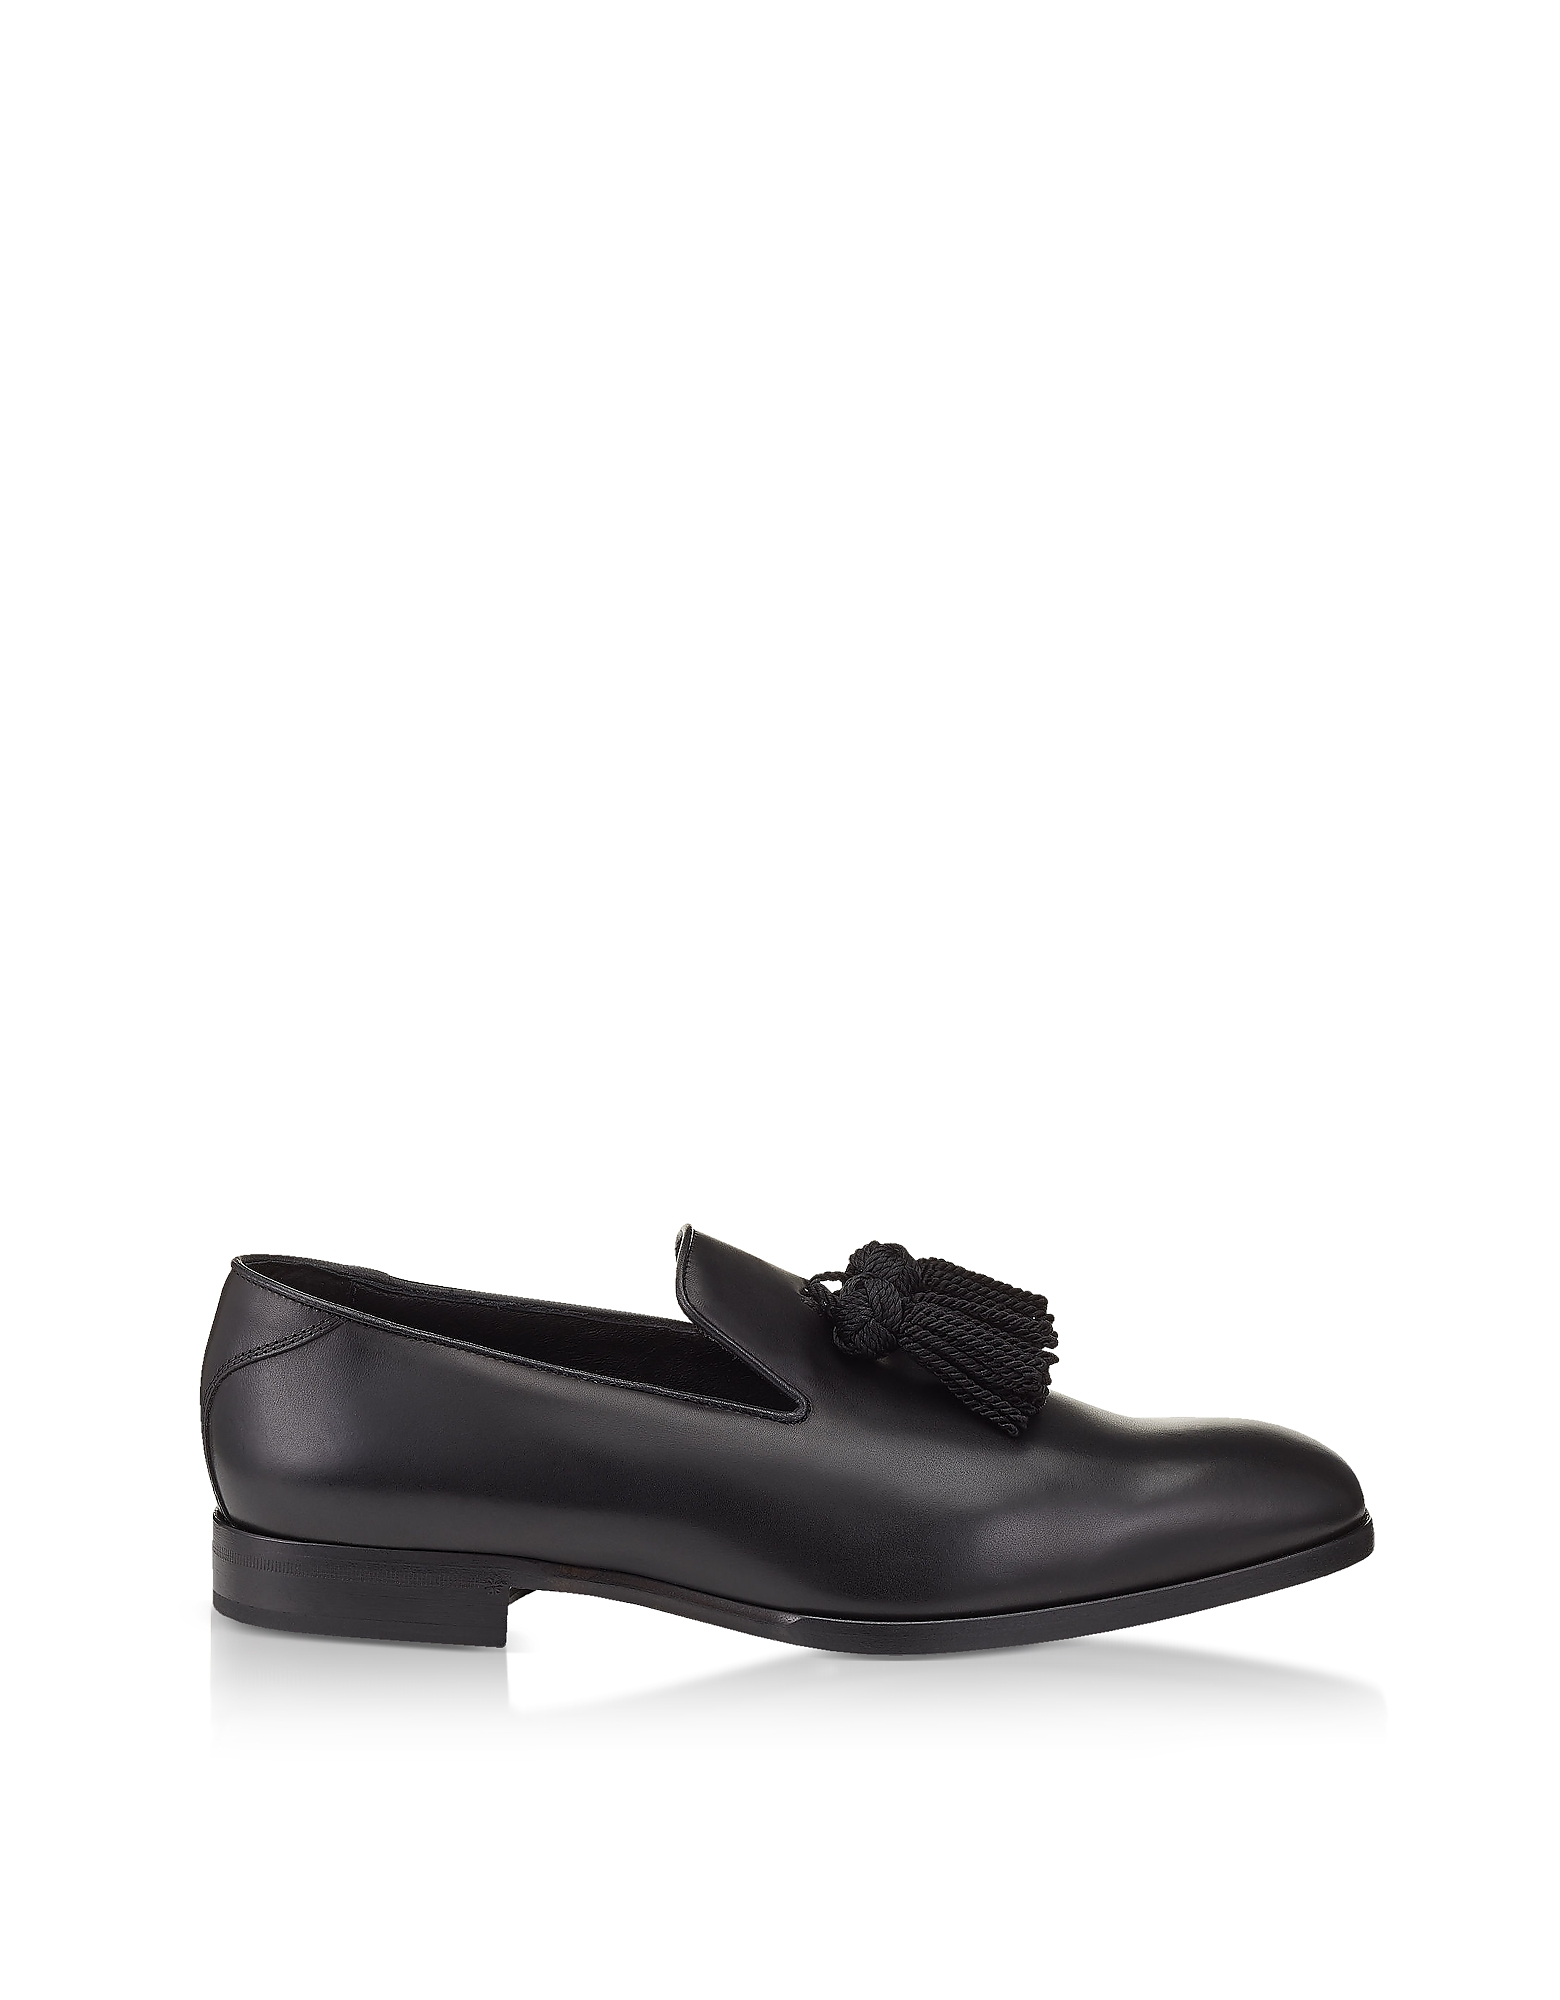 FOXLEY BLACK SOFT NAPPA LEATHER TASSELLED SLIPPERS from FORZIERI